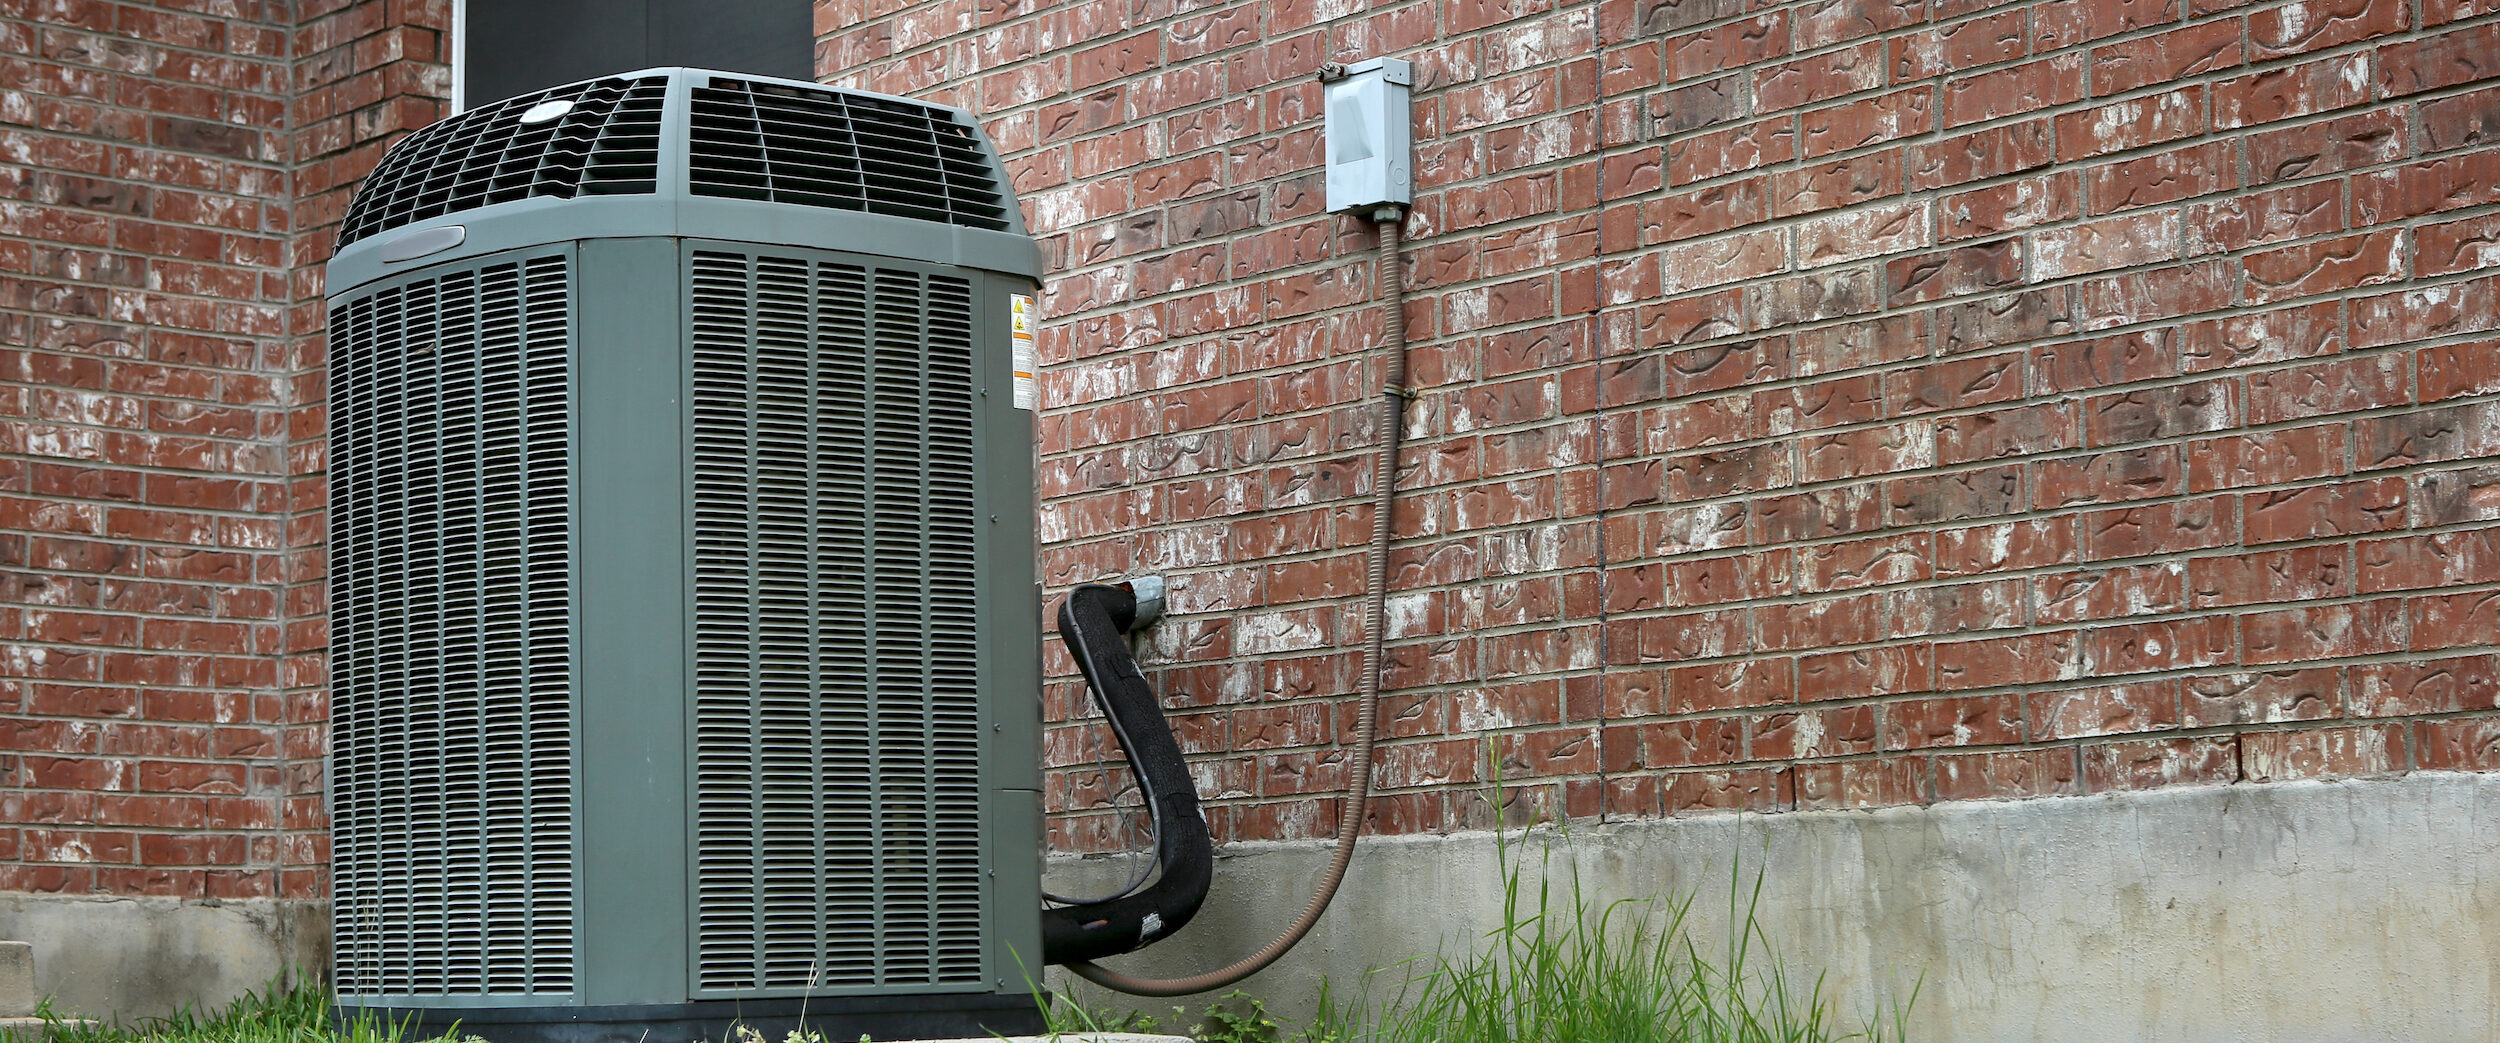 Heat Pump In Green Grass Outside Of Home